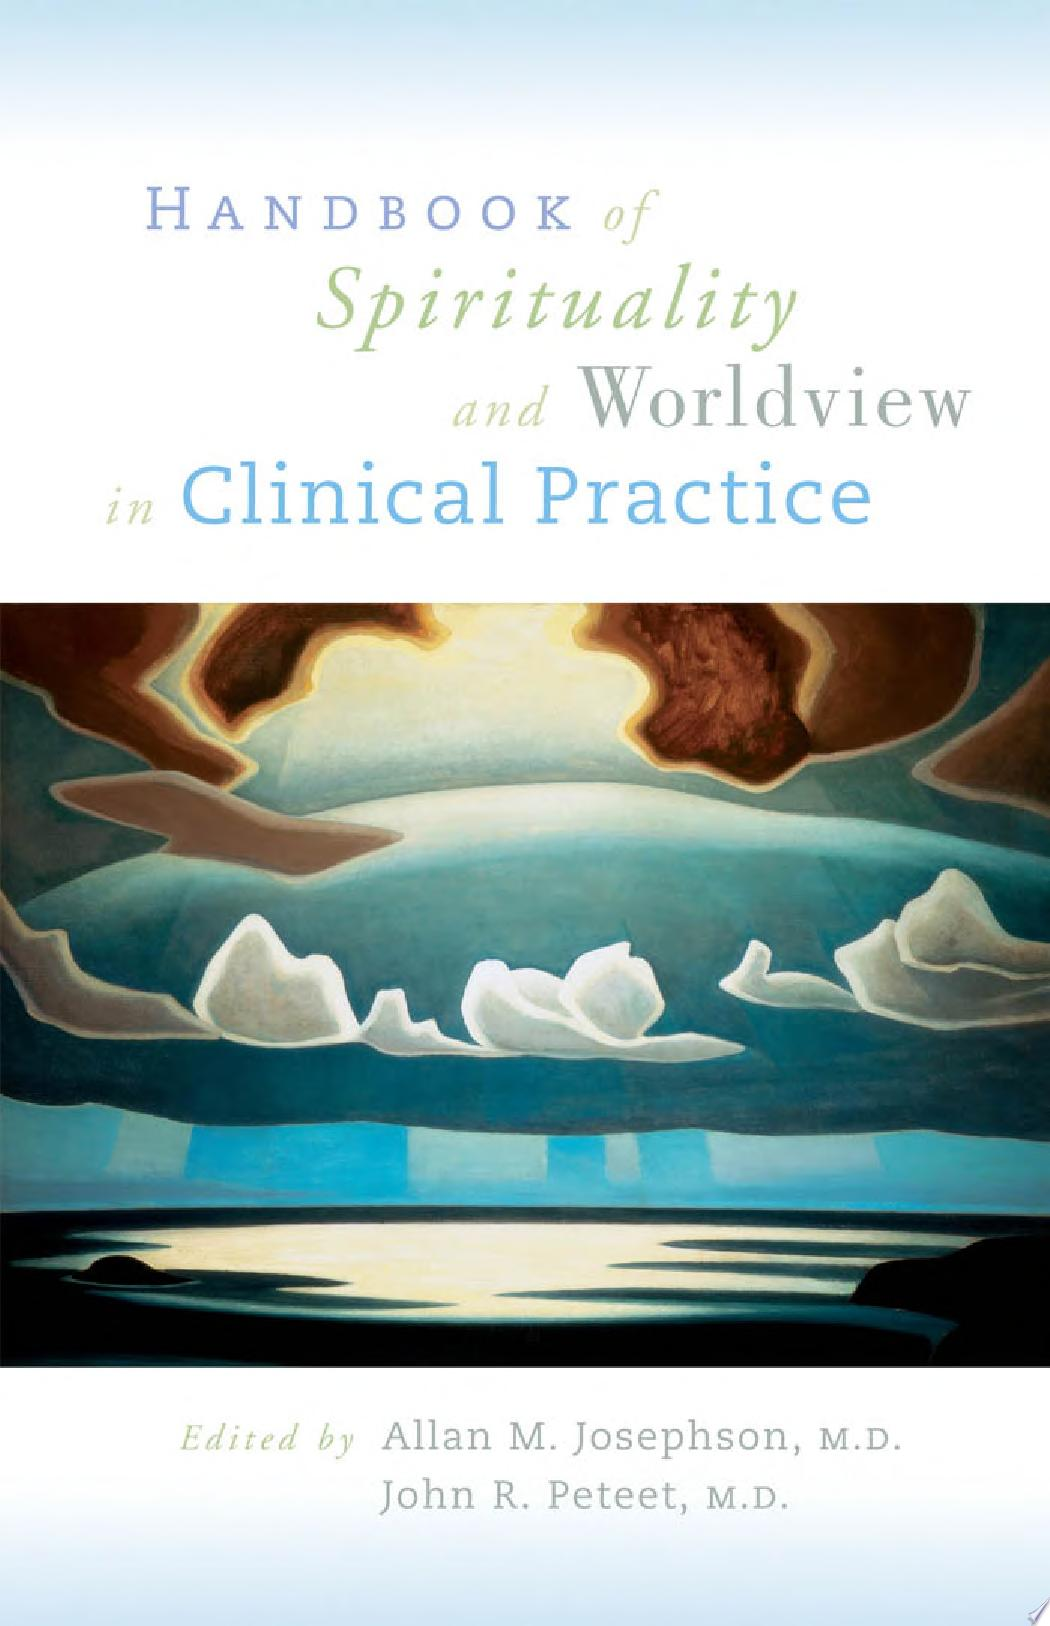 Handbook of Spirituality and Worldview in Clinical Practice